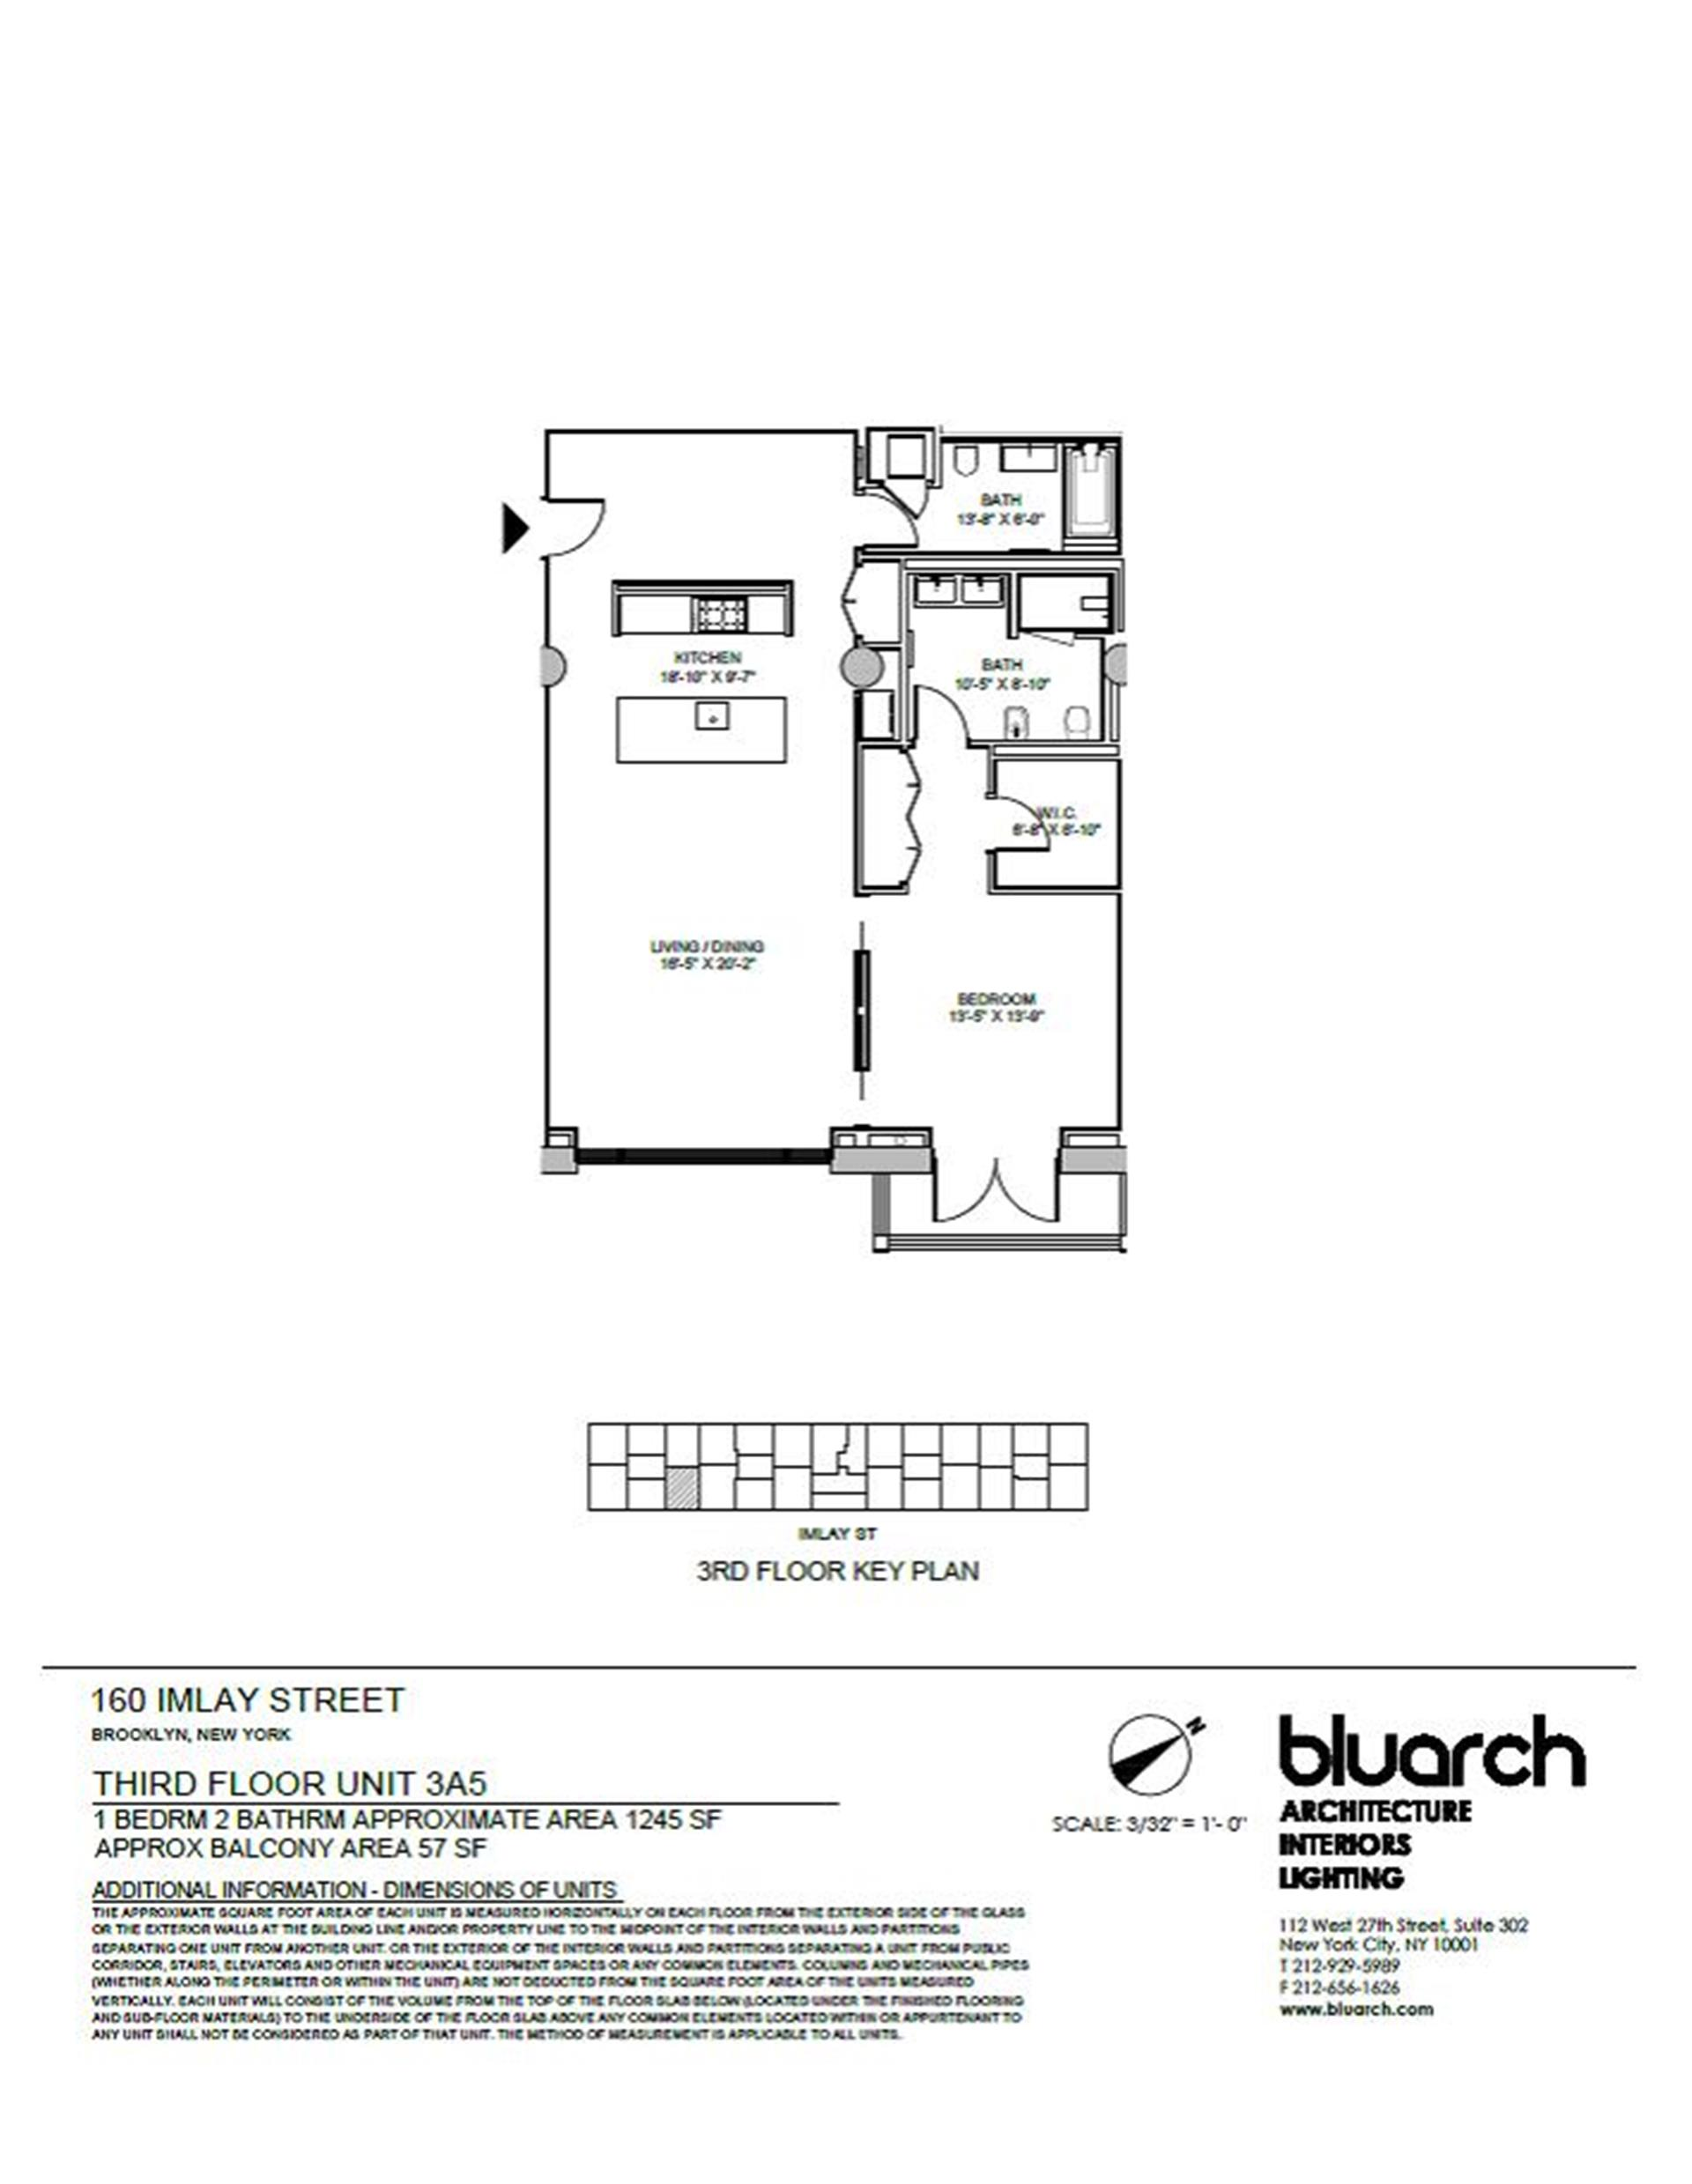 Floor plan of The New York Dock Building, 160 Imlay St, 3A5 - Red Hook, New York